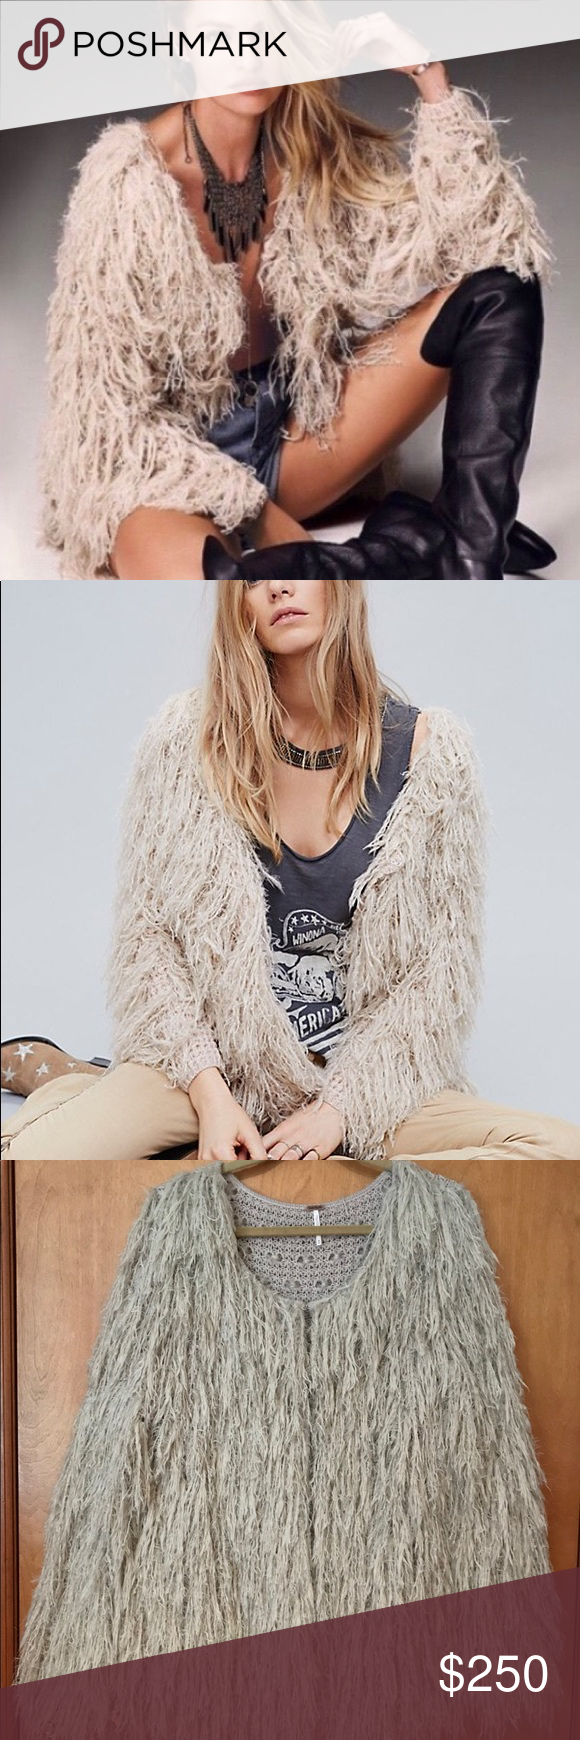 547883a6d8cdd2 NWOT Free People Faithful Shaggy Cardigan Sand color! In flawless  condition! Free People Sweaters Cardigans